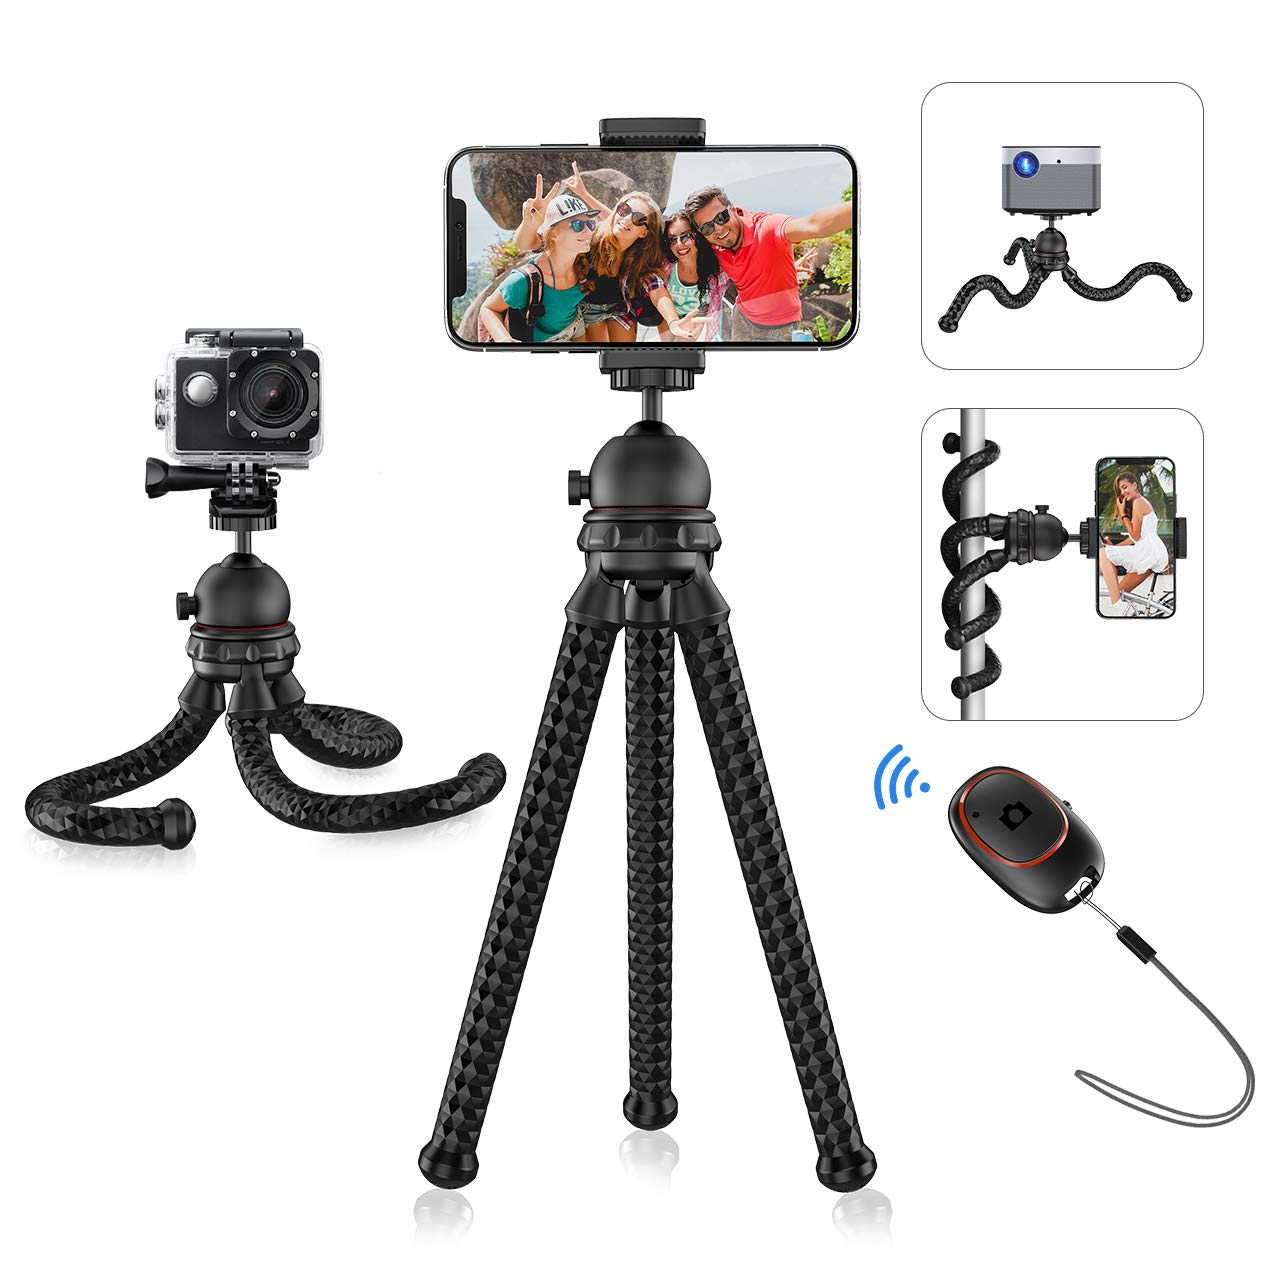 Mpow Phone Tripod, Flexible Camera Tripod with Bluetooth 5.0 Remote Shutter & 360° Rotation, Portable Camera Tripod Stand Compatible with GoPro and Small Camera, Smartphone 11 Pro Max/11/XS/XR/X/8